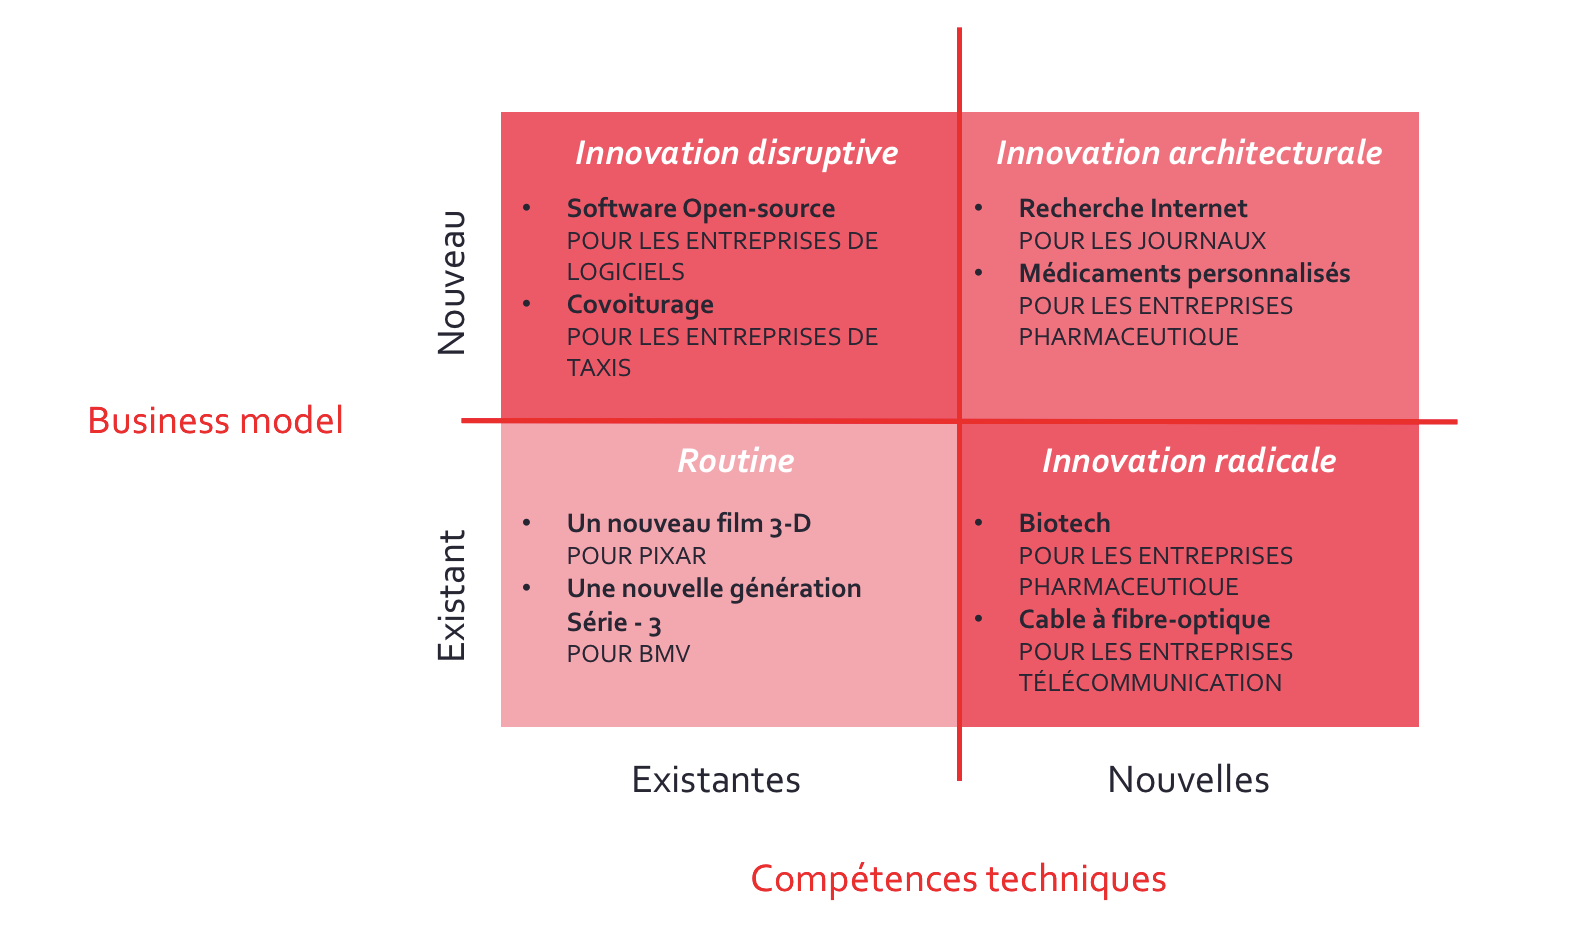 Canevas, Gary Pisano, innovation, rupture